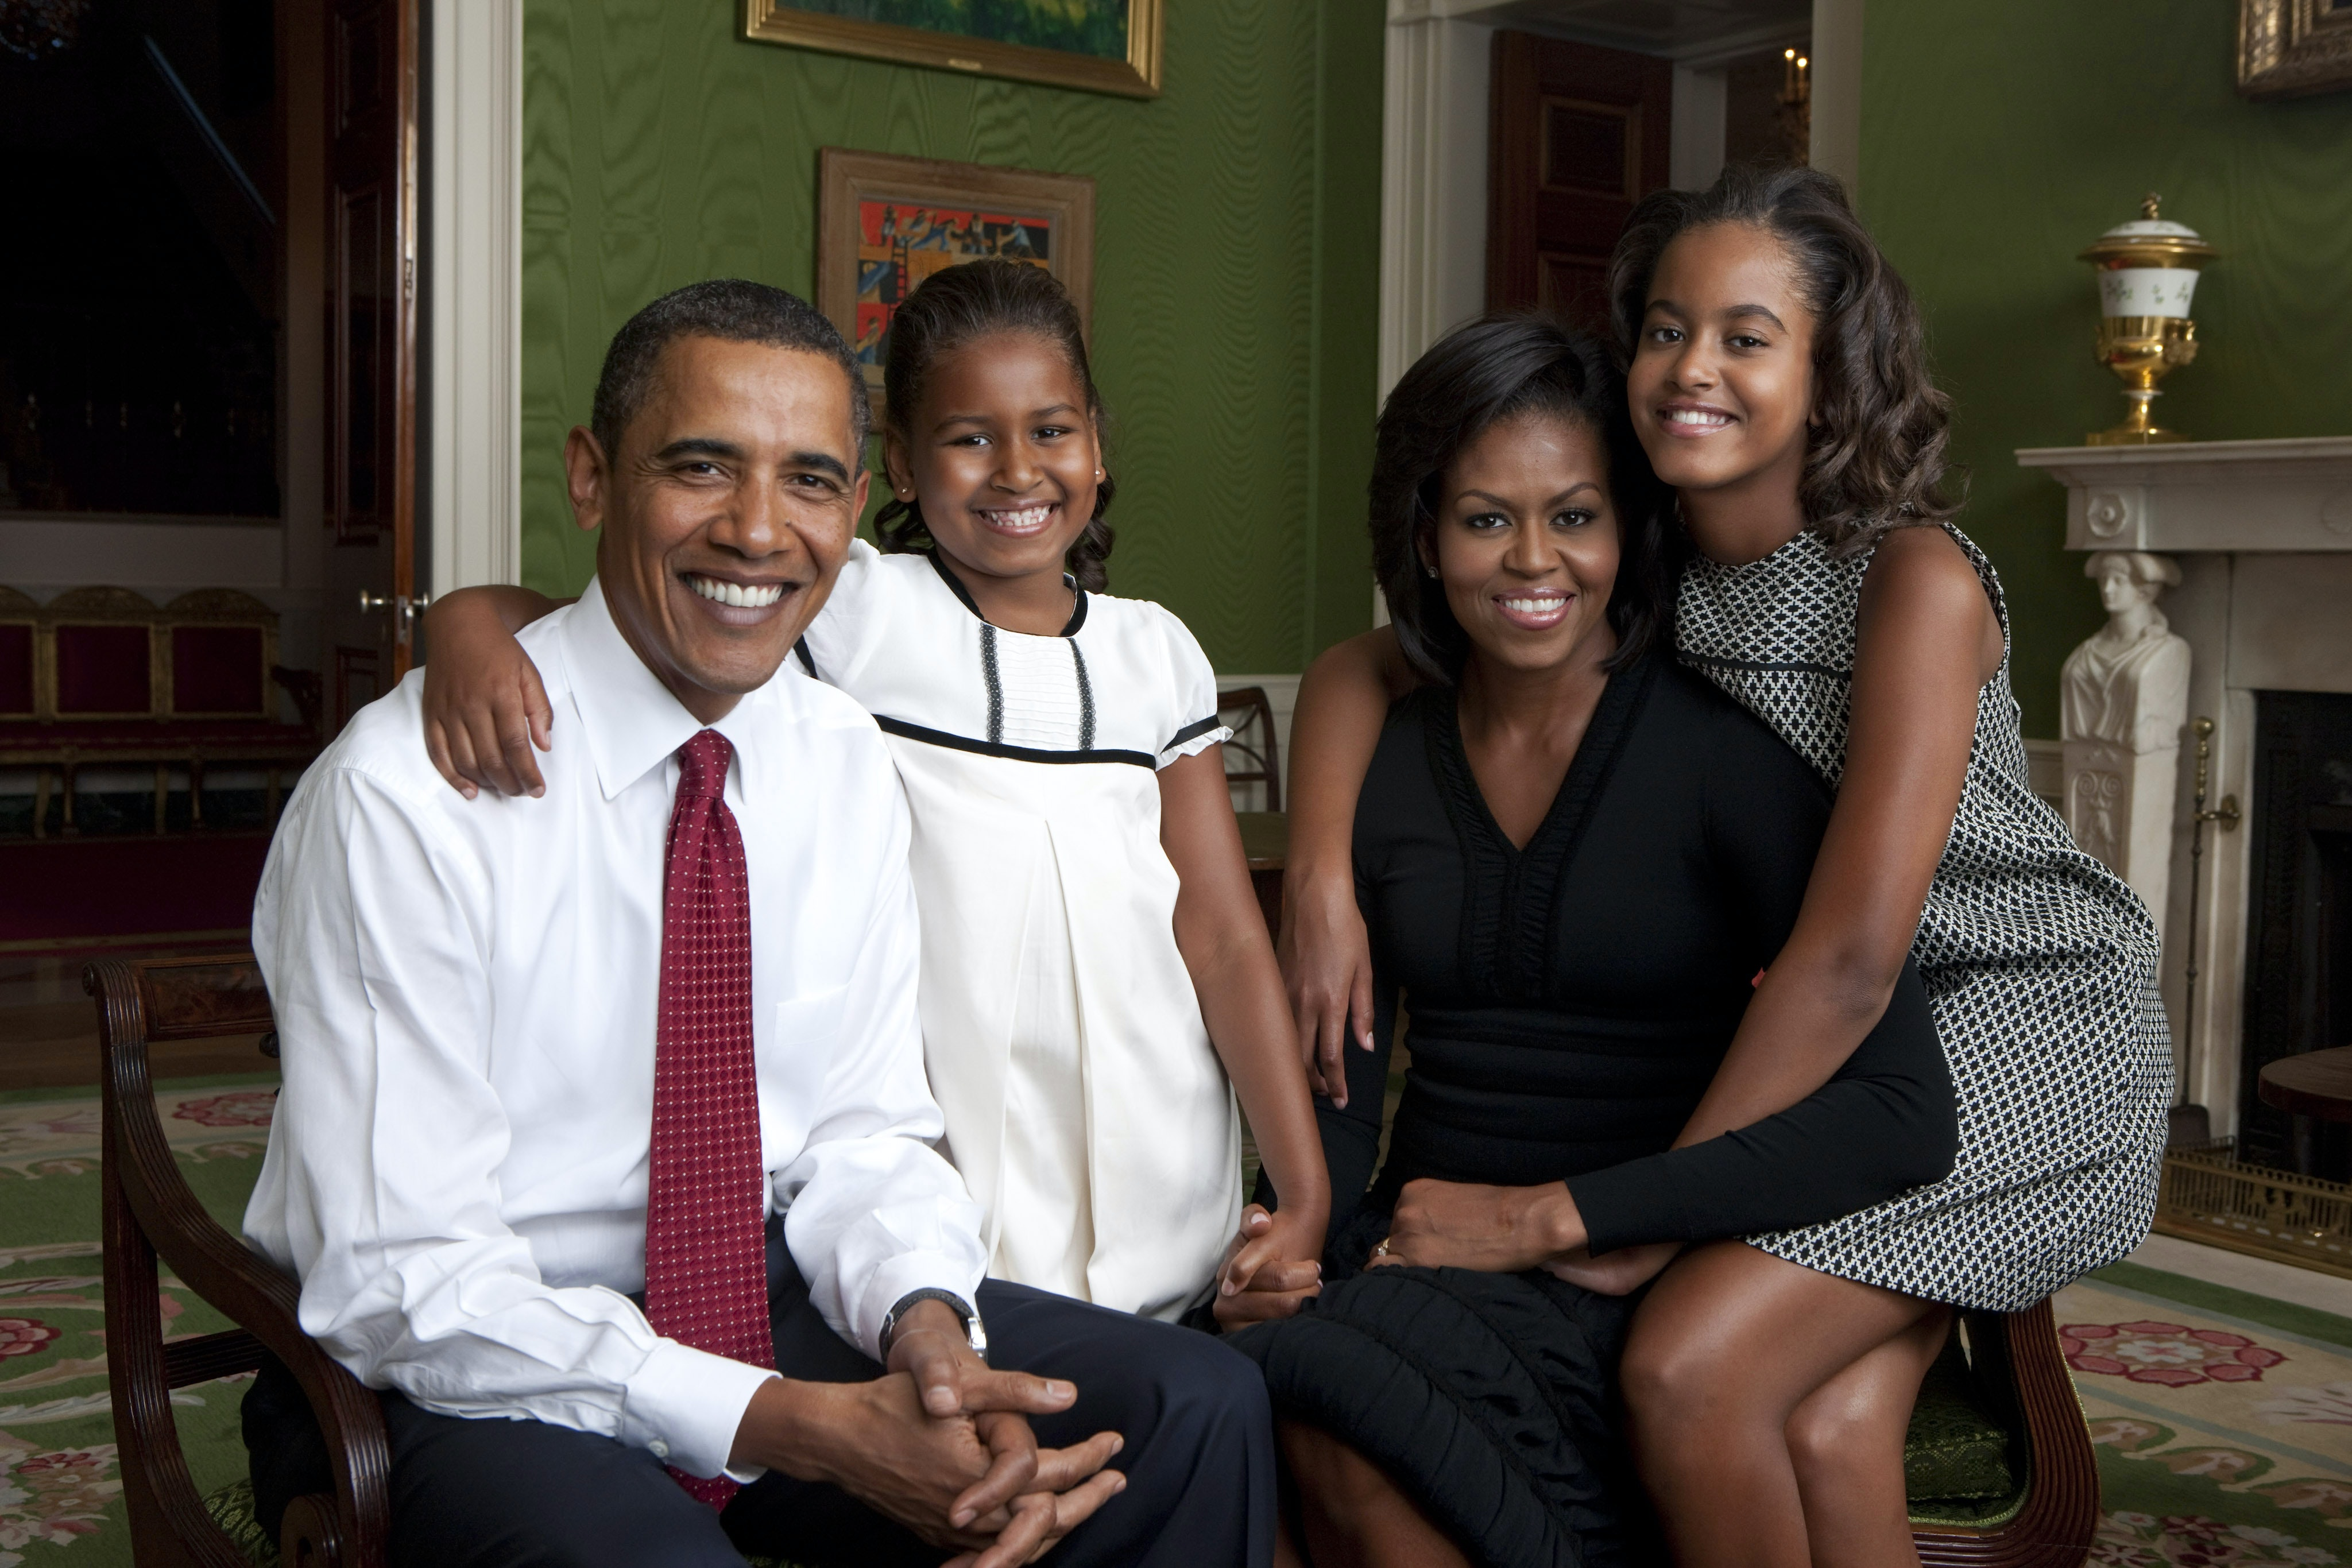 Every Family Portrait Of The Obamas While In Office, Ranked